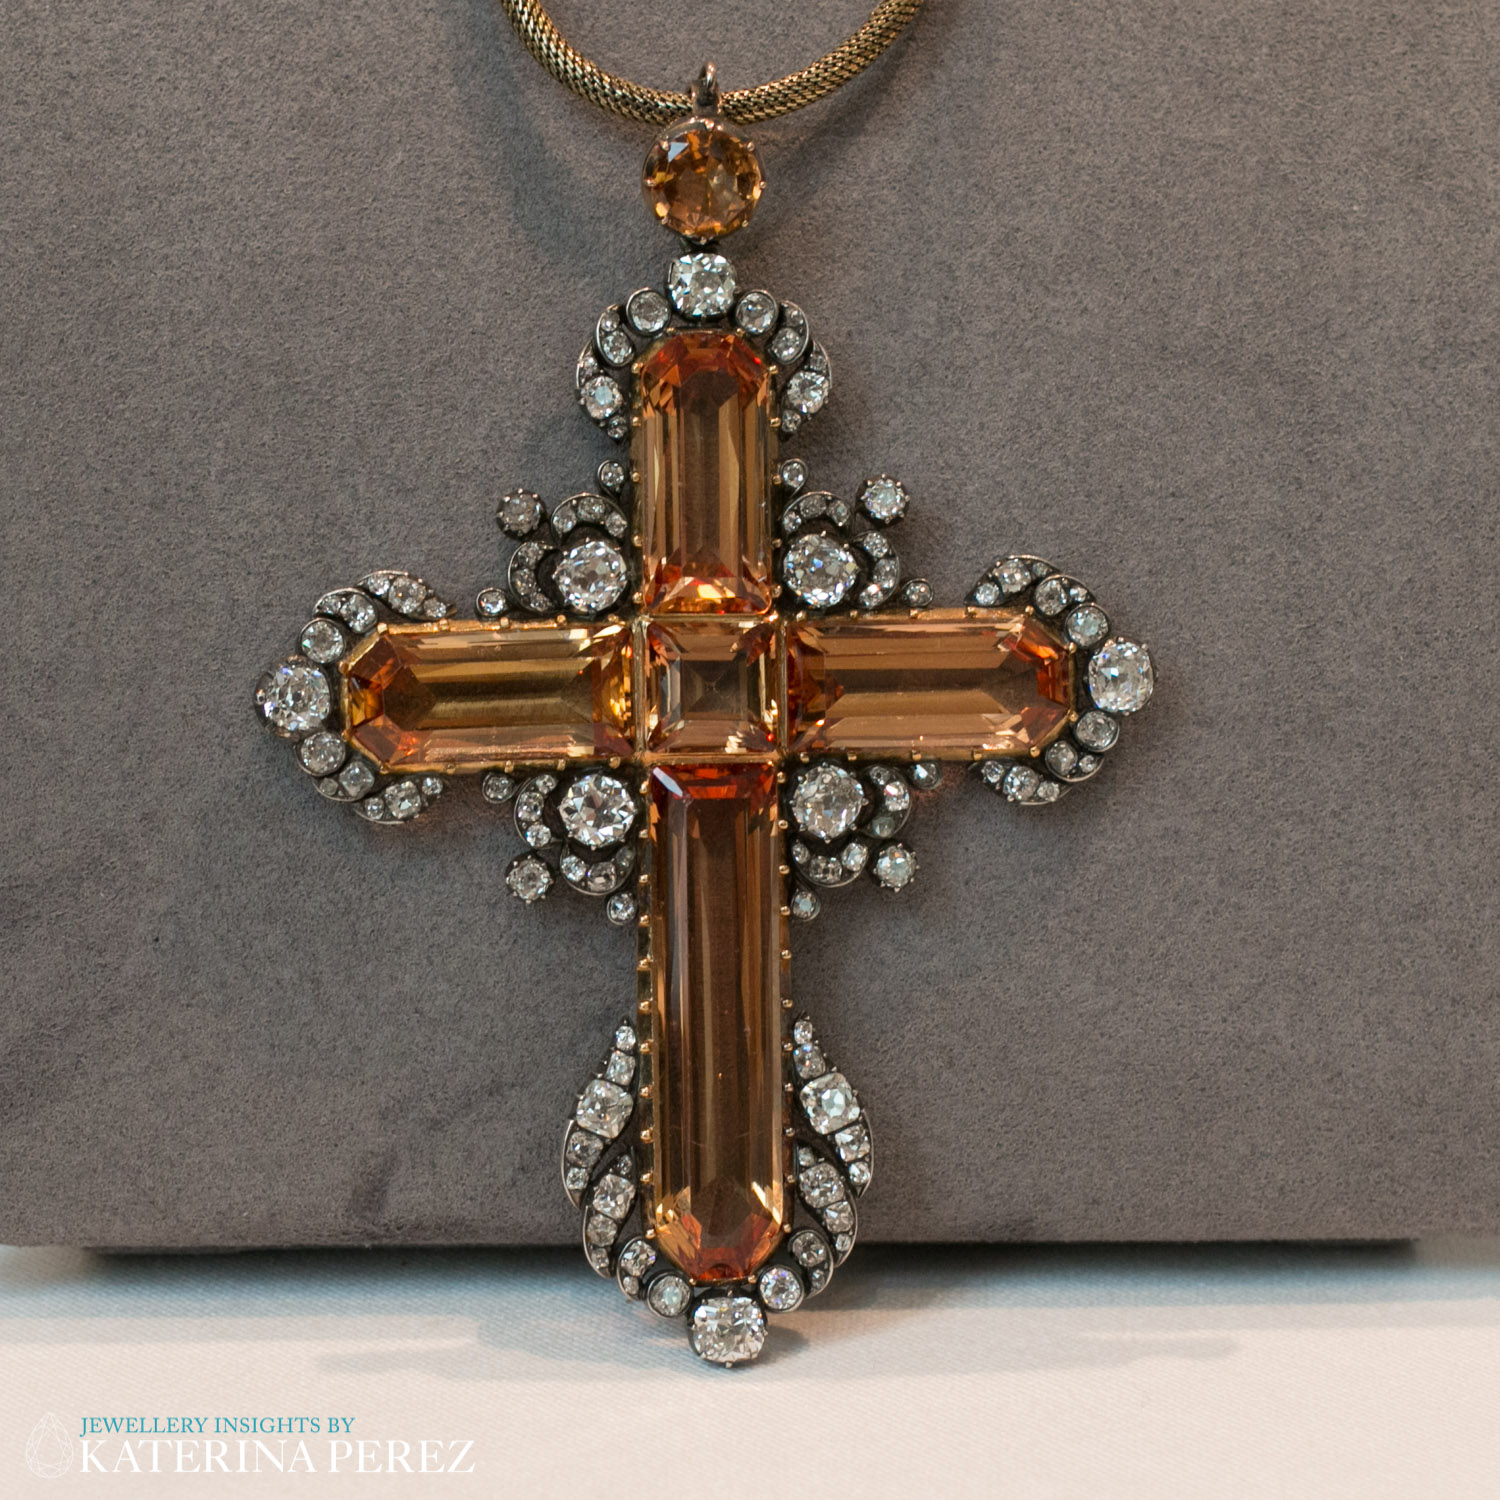 An Imperial Cross Pendant, Topaz and Diamond, circa 1830. Circular-cut topaz with old brilliant and rose-cut diamonds, total 7.30 carats